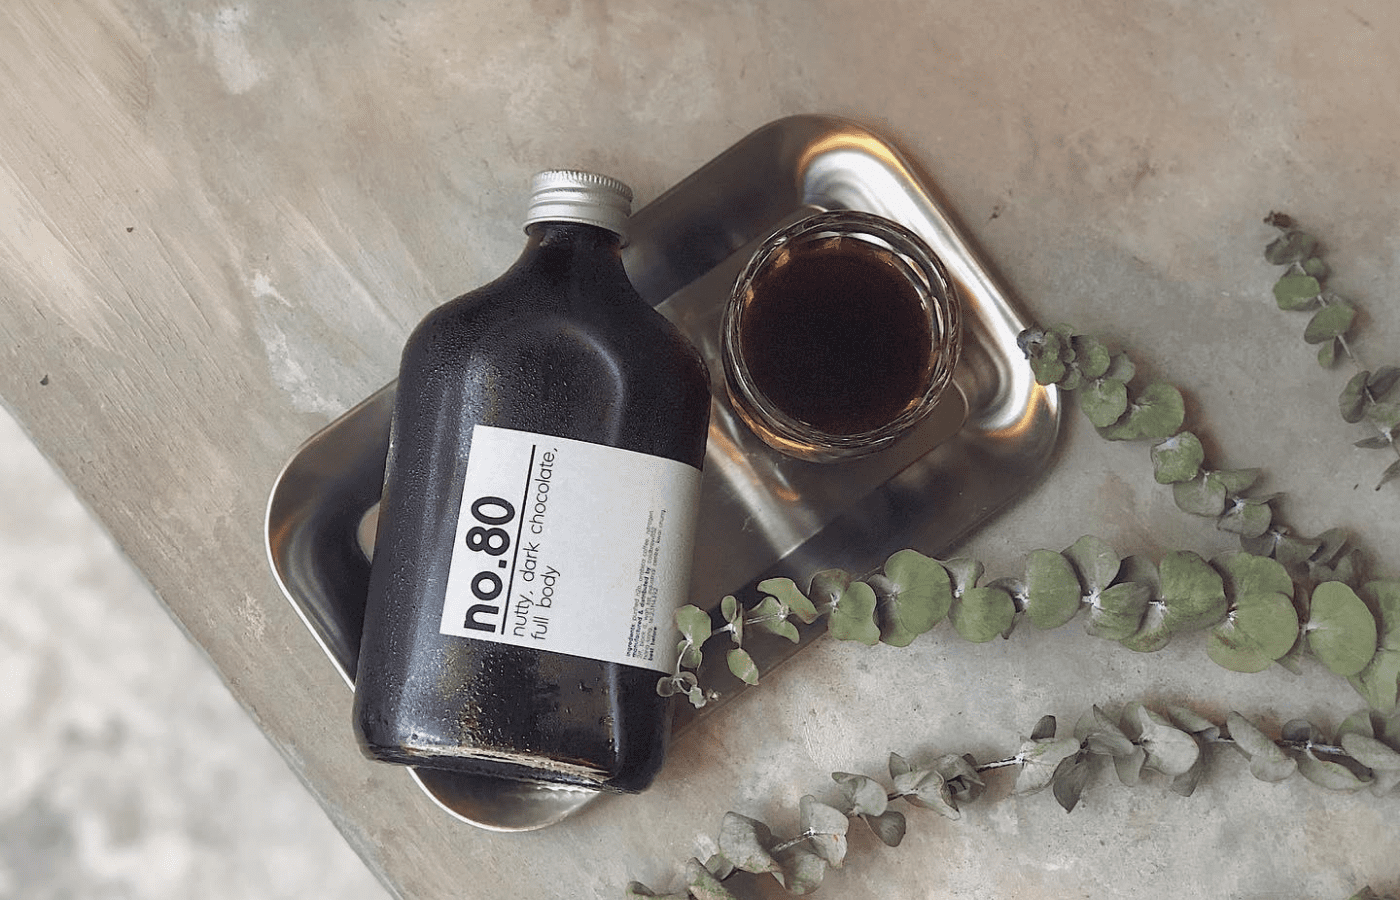 a bottle of coffee on a table